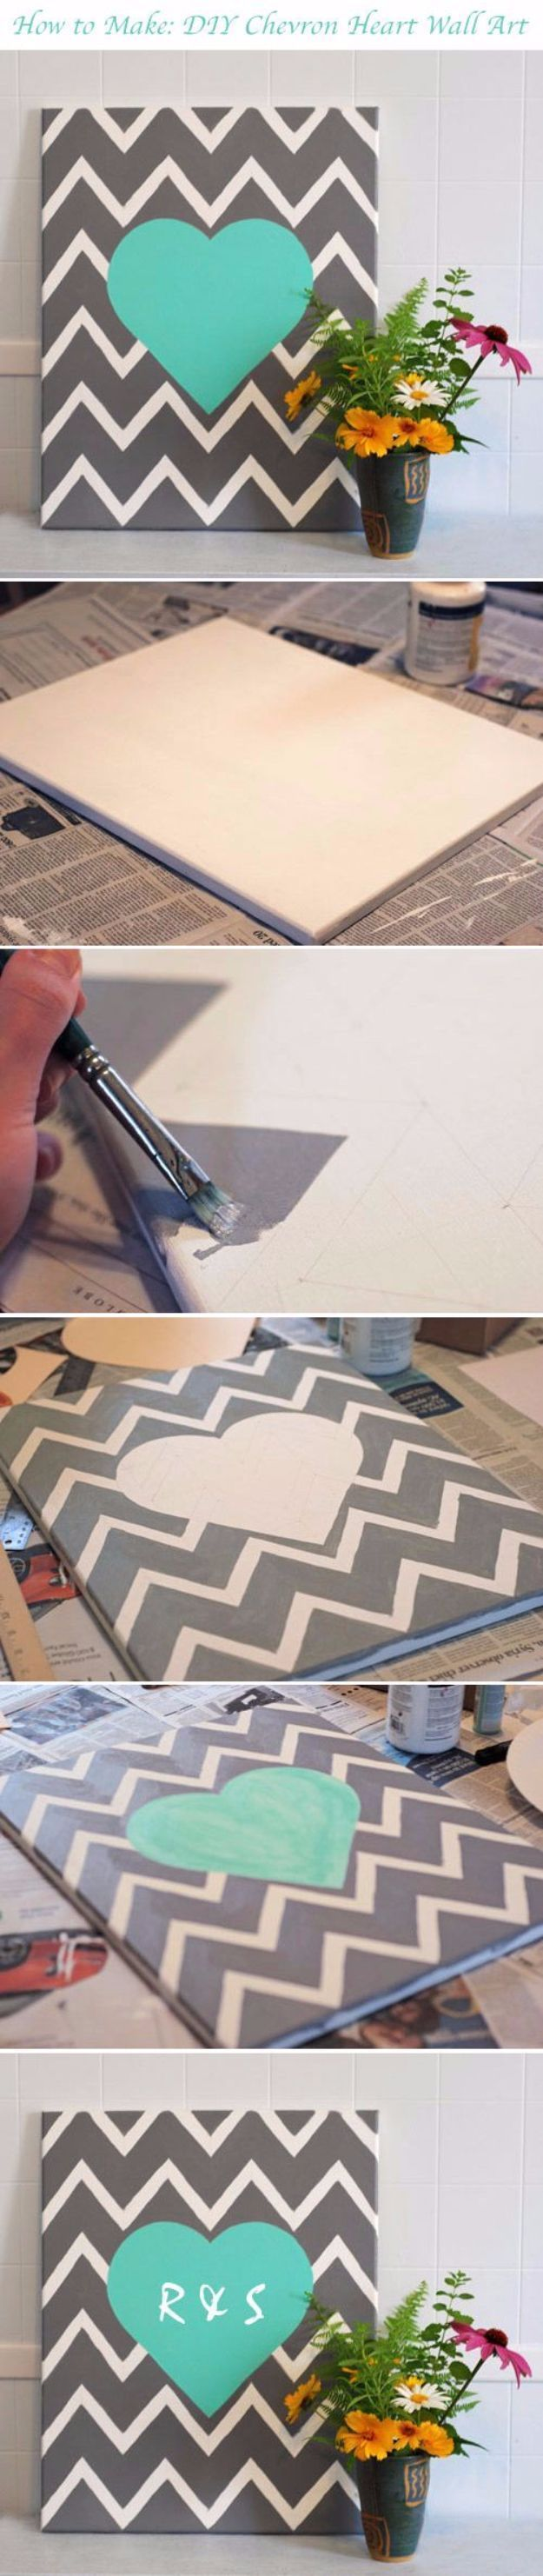 Diy canvas painting ideas diy chevron heart cool and easy wall